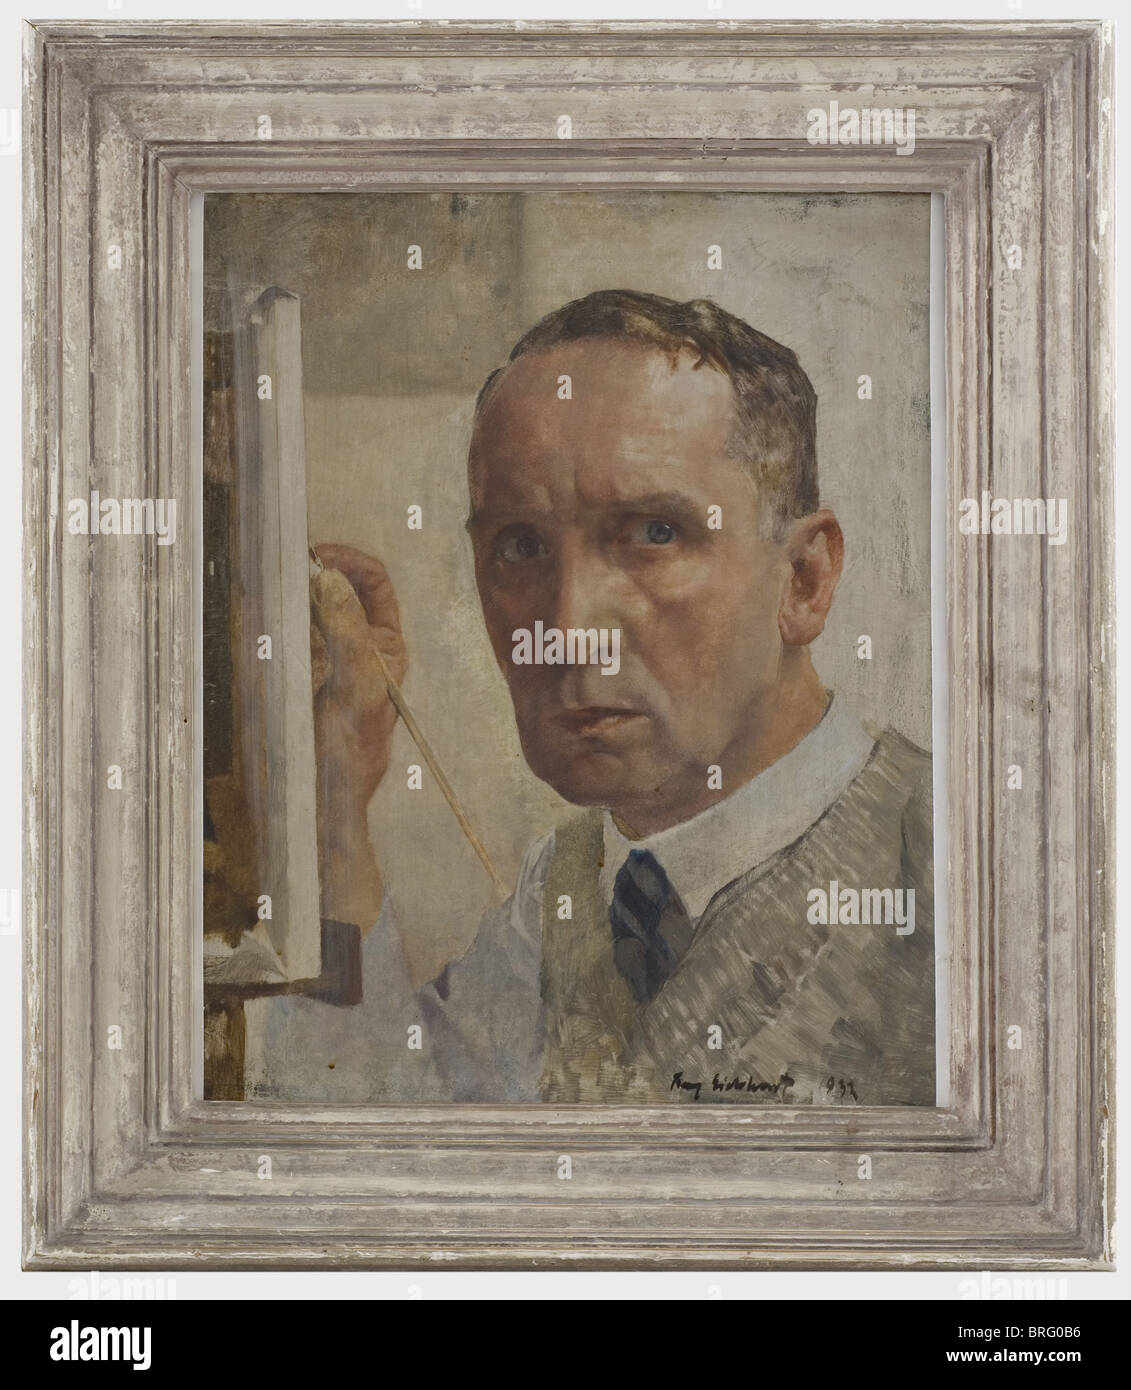 Franz Eichhorst (1885 - 1948), a self portrait (1932) Oil on wood, signed and dated 'Franz Eichhorst 1932' - Stock Image